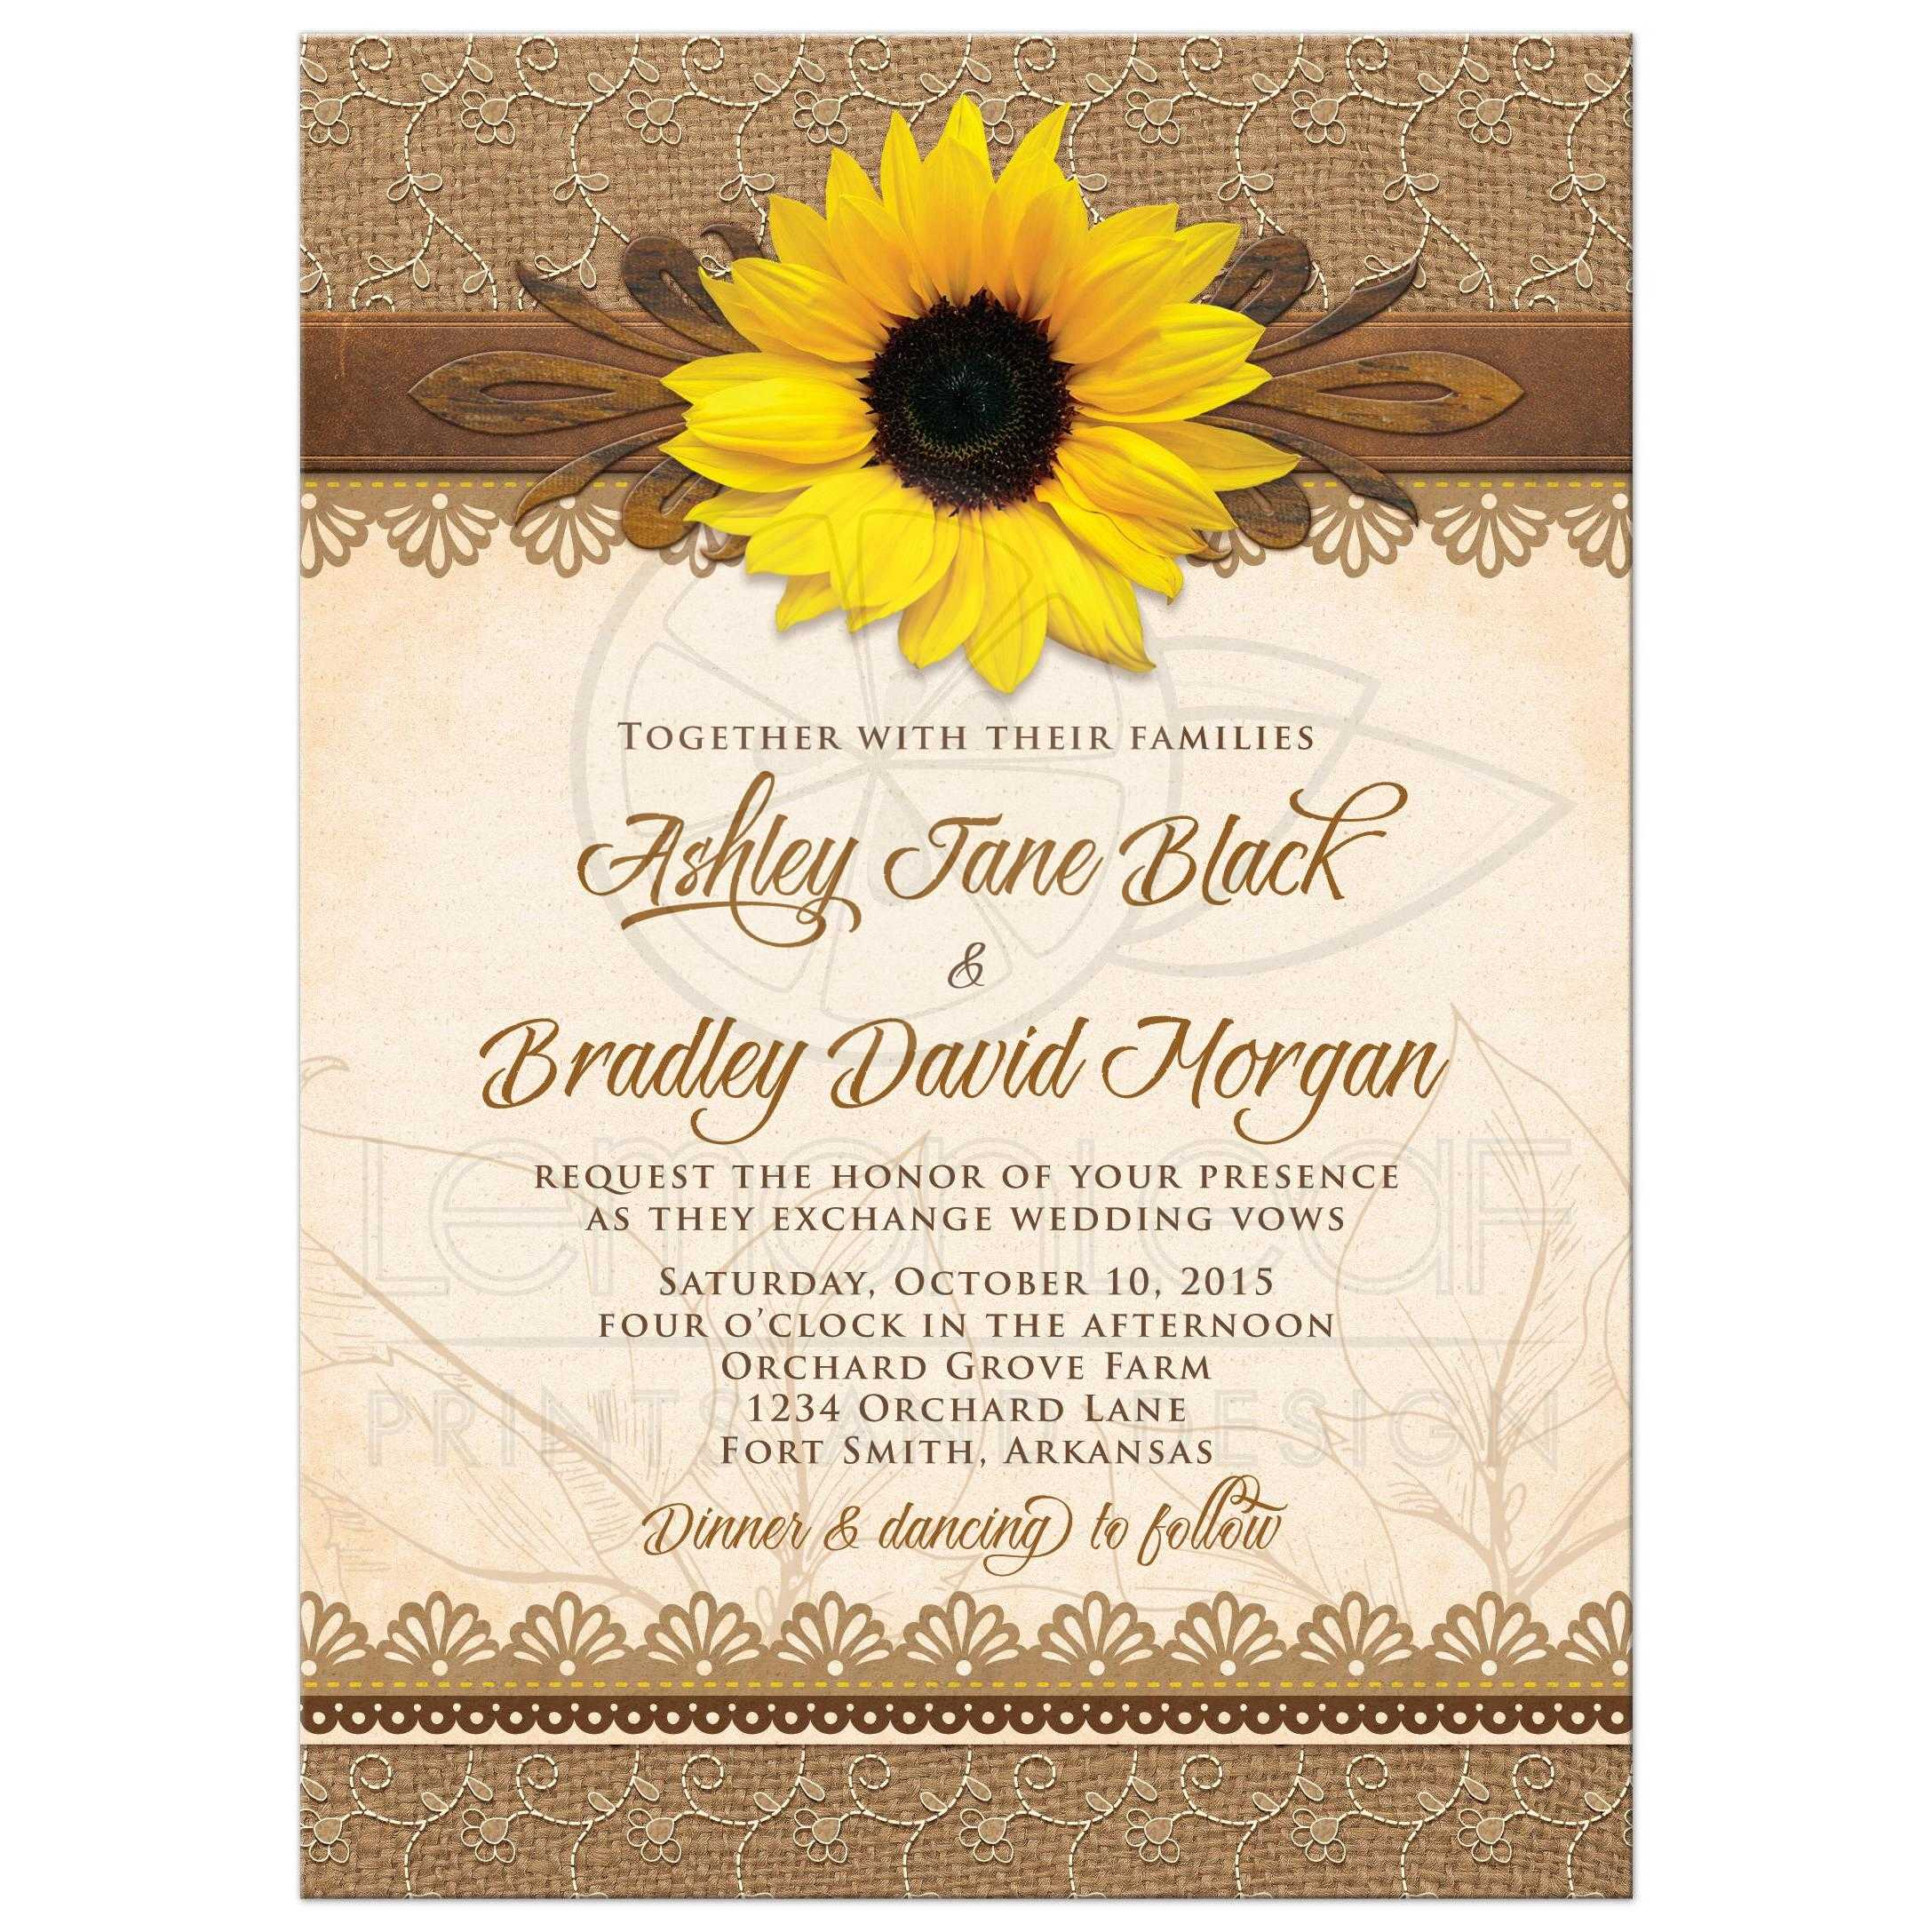 Quinceanera Invitation Kits for best invitations layout